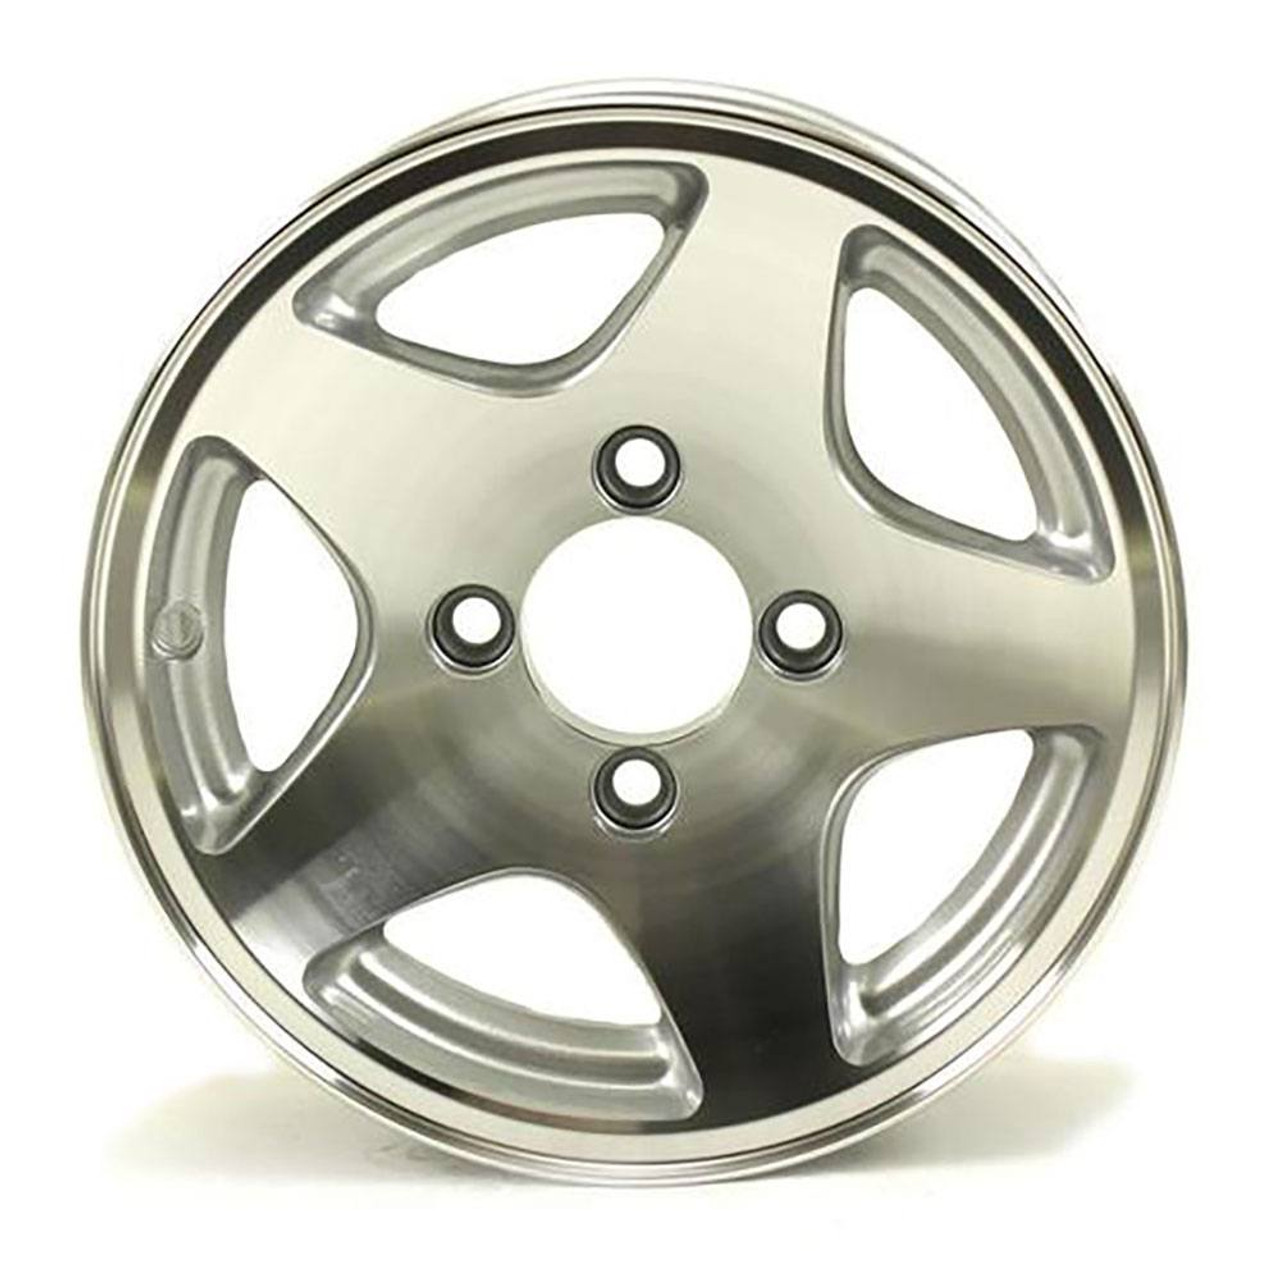 "12X4 4-Lug on 4"" Aluminum Series 04 Trailer Wheel - 424440"